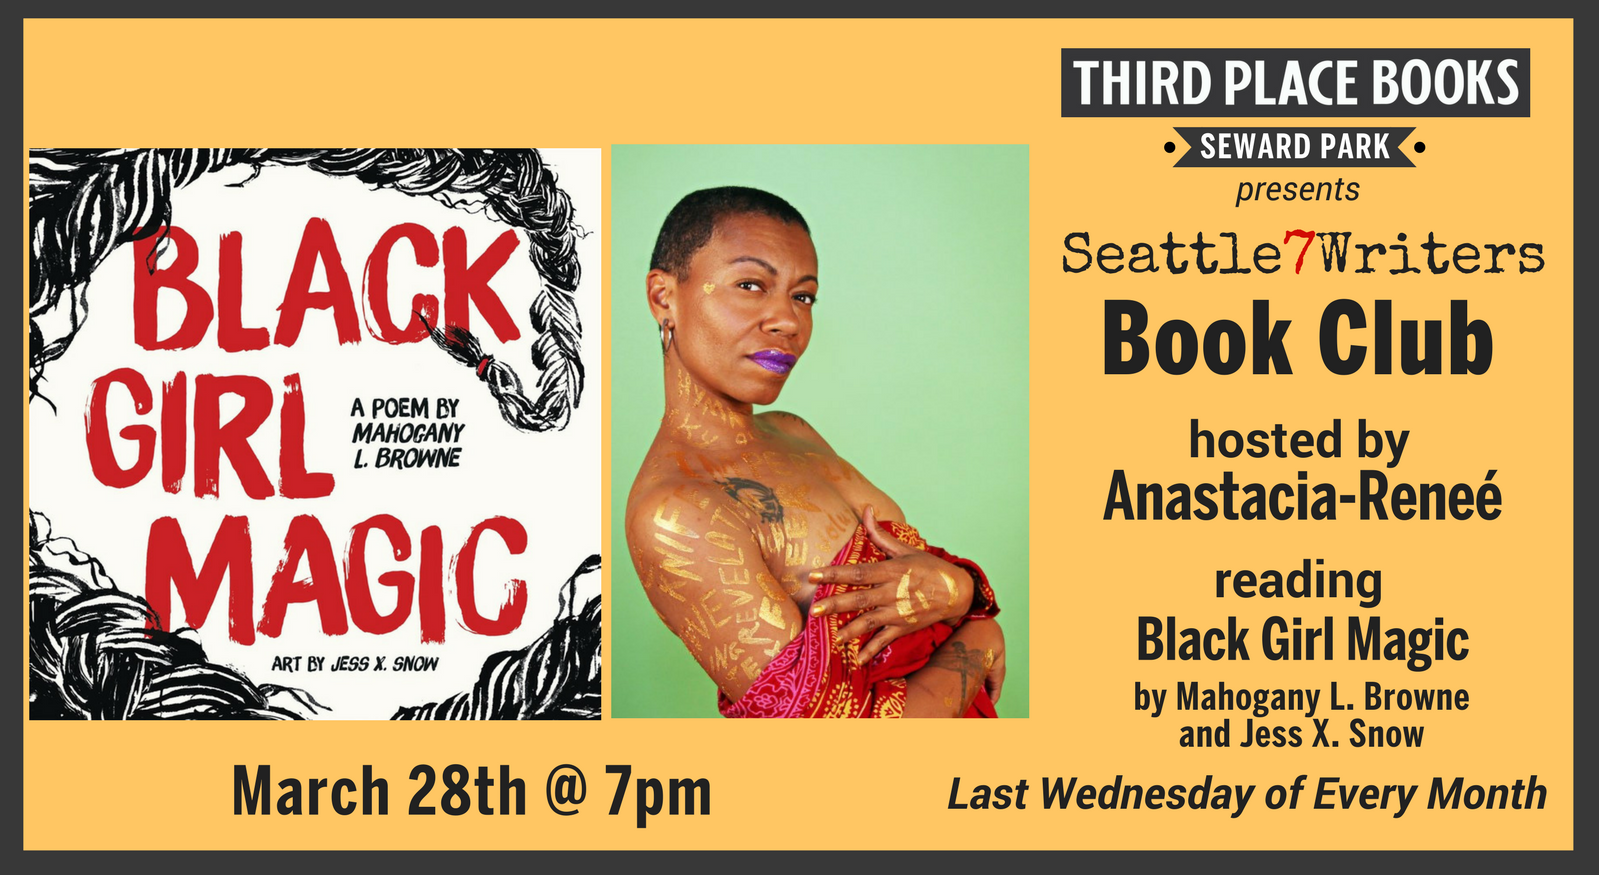 Seattle7Writers Book Club hosted by Anastacia-Reneé reading Black Girl Magic